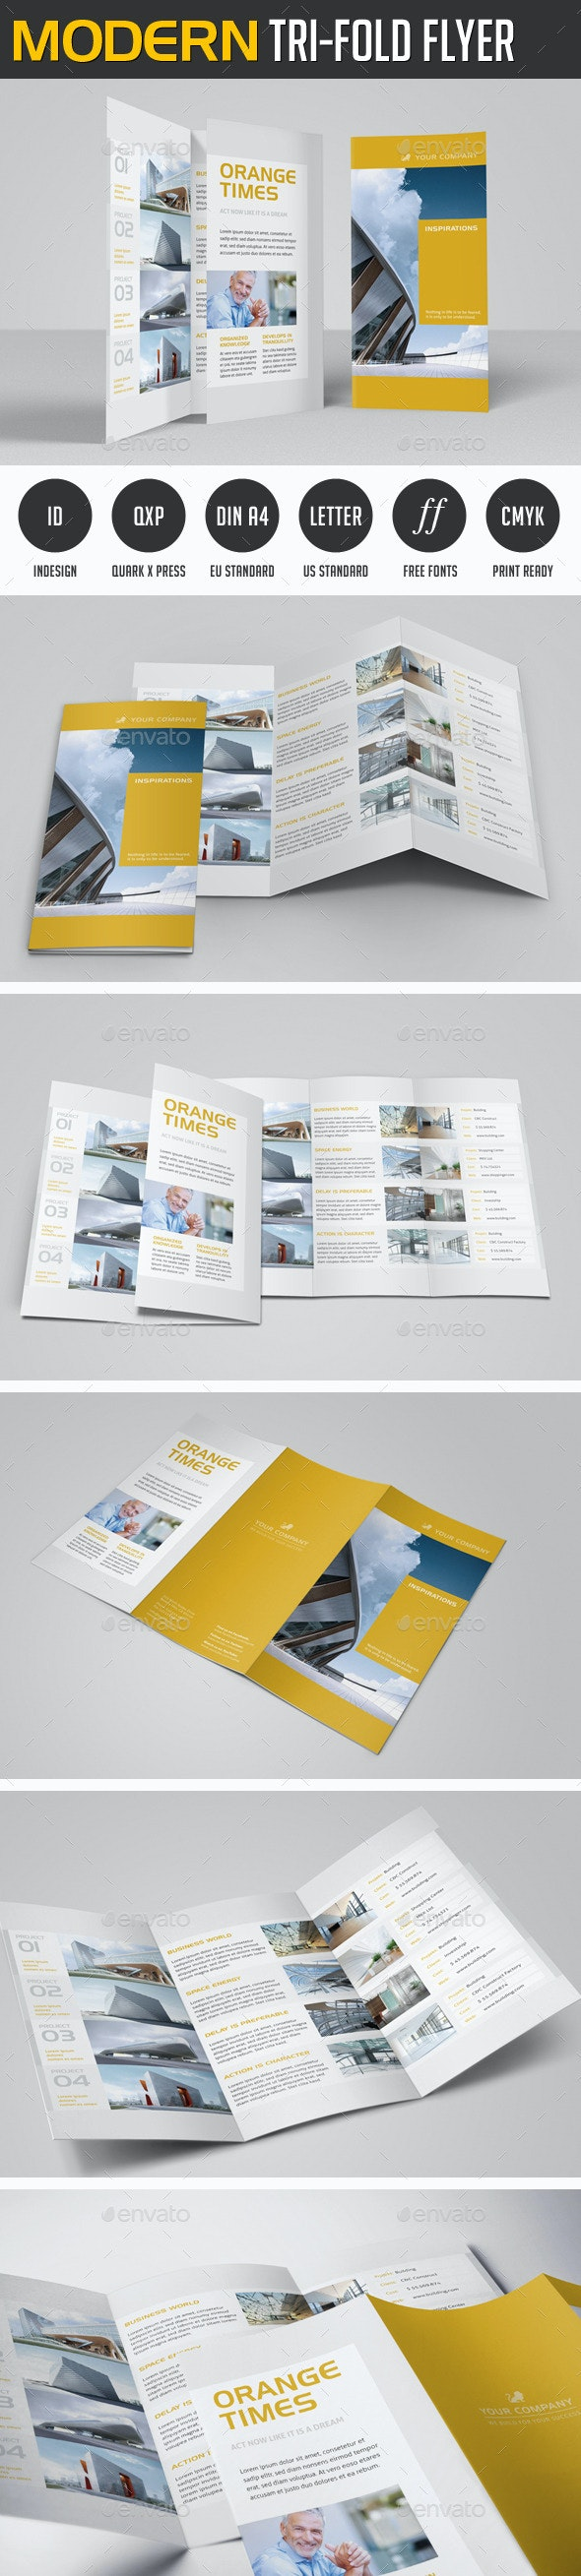 Modern Project Trifold Flyer - Corporate Flyers